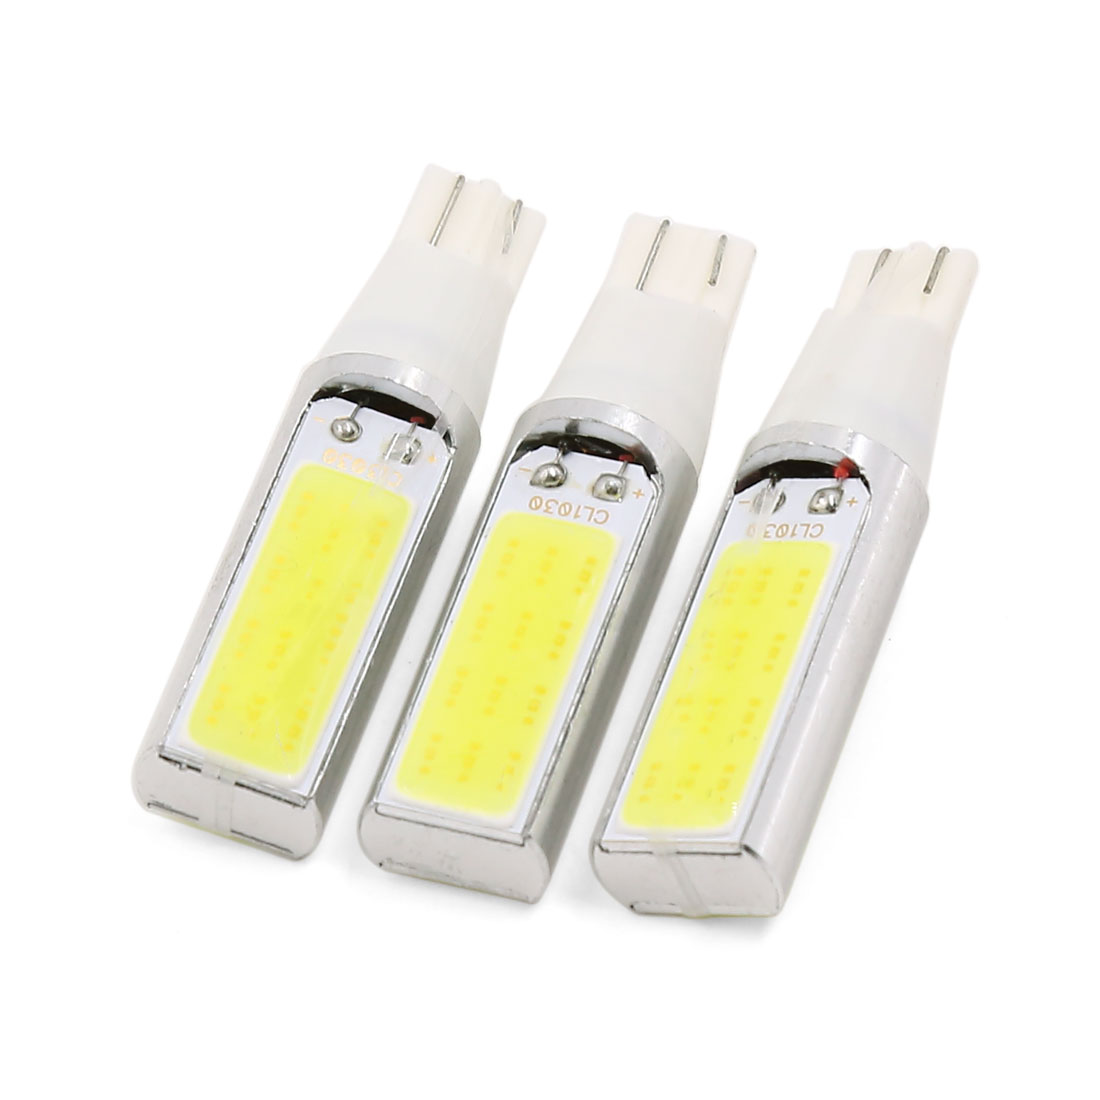 3 Pcs 12V T10 Base White COB LED Side Lamp Wedge Instrument Light Bulb Interior